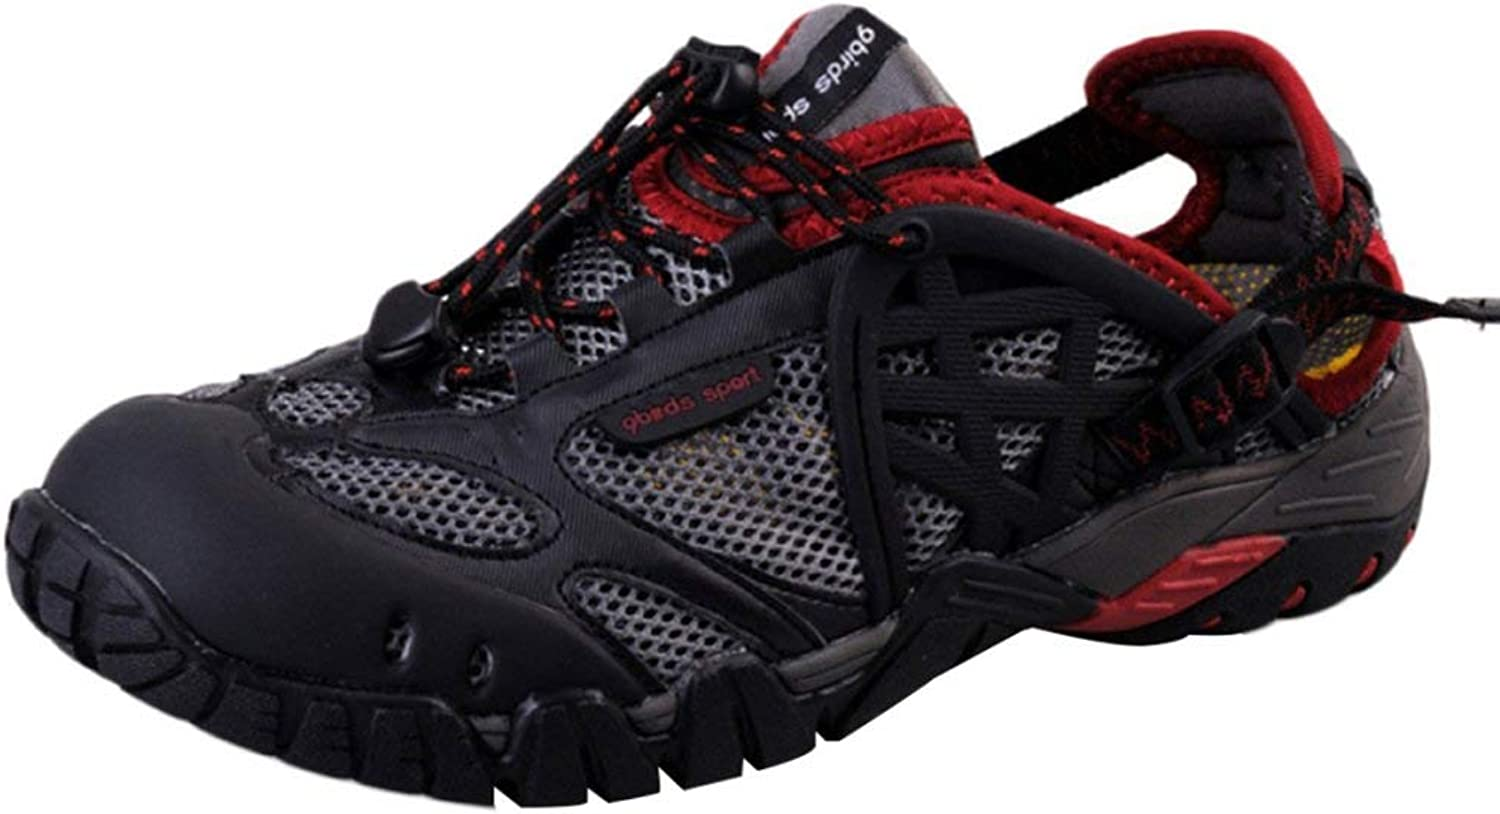 Dsx Neutral Waterproof shoes Hiking Outdoor Climbing Sandals Sports Running Wading shoes shoes, red, 43EU